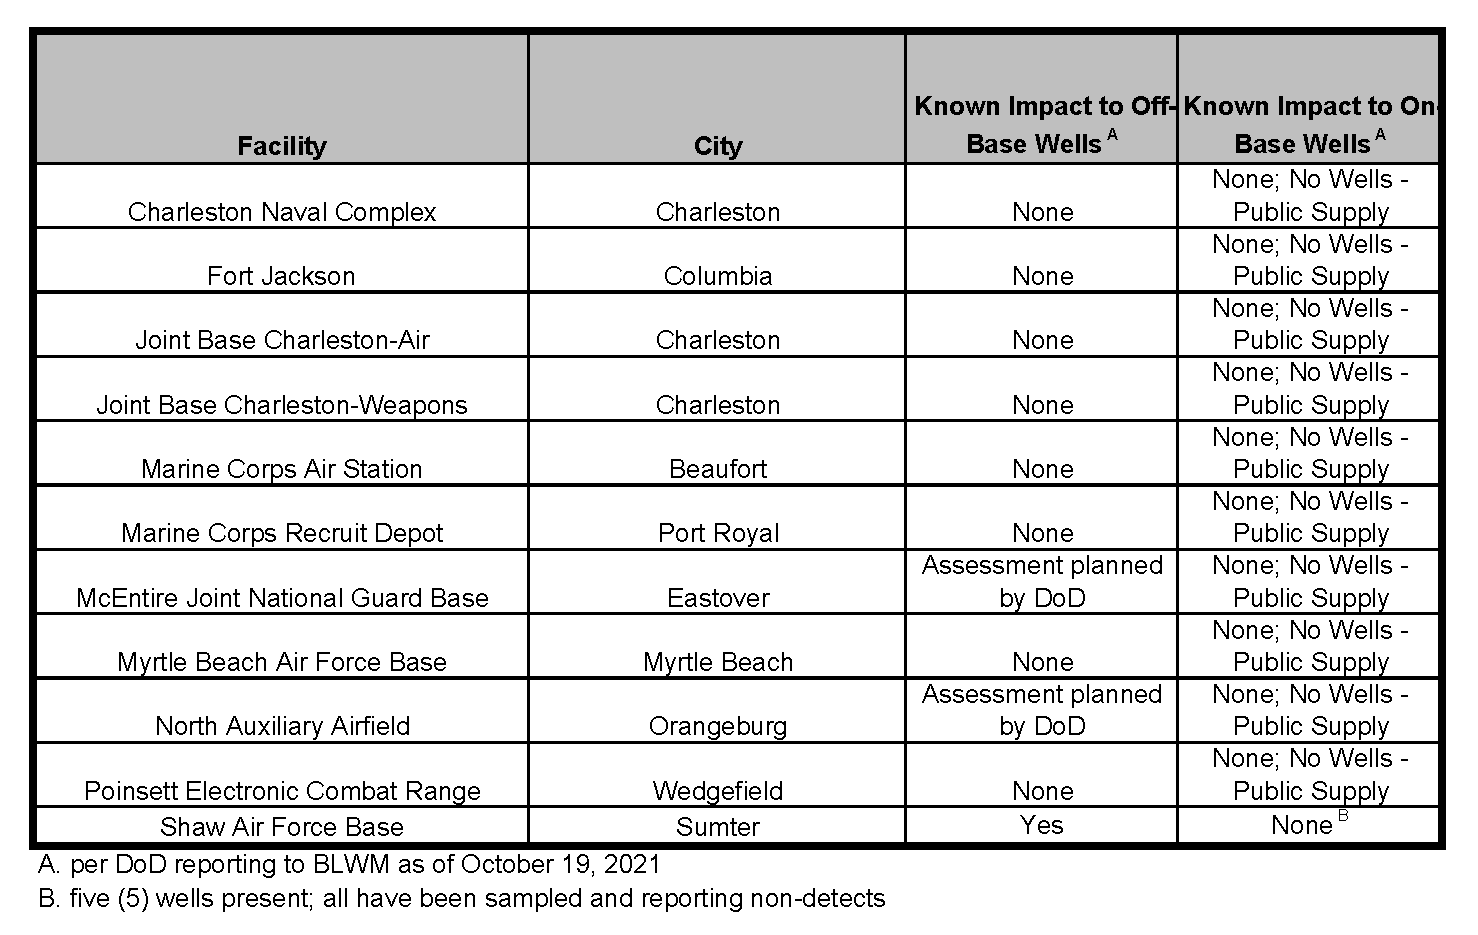 Table of PFAS Impacts on Drinking Water at South Carolina Department of Defense Facilities